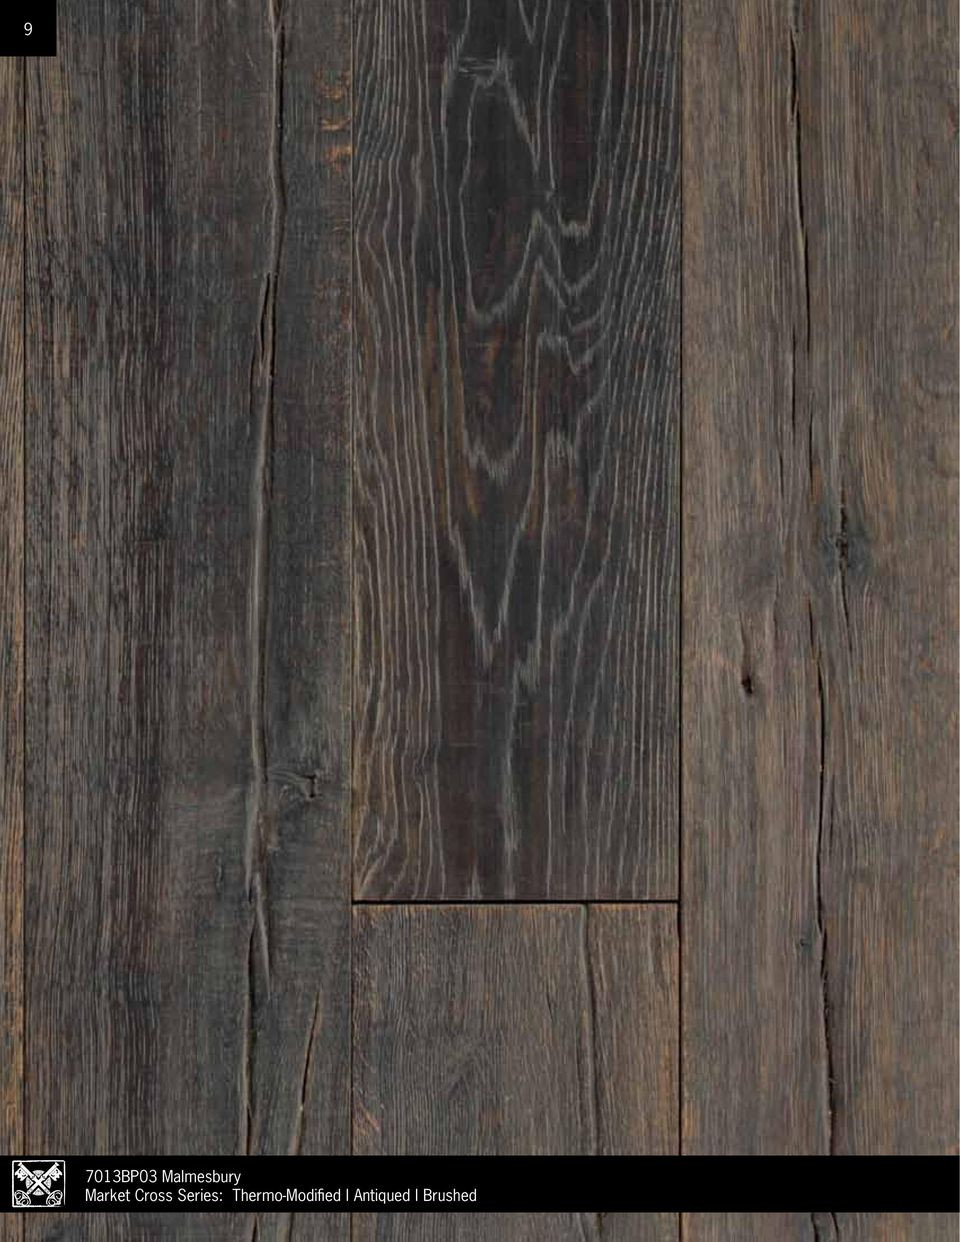 15 Spectacular Mohawk Floorcare Essentials Hardwood Laminate Floor Cleaner 2021 free download mohawk floorcare essentials hardwood laminate floor cleaner of make any home a castle pdf within cross series